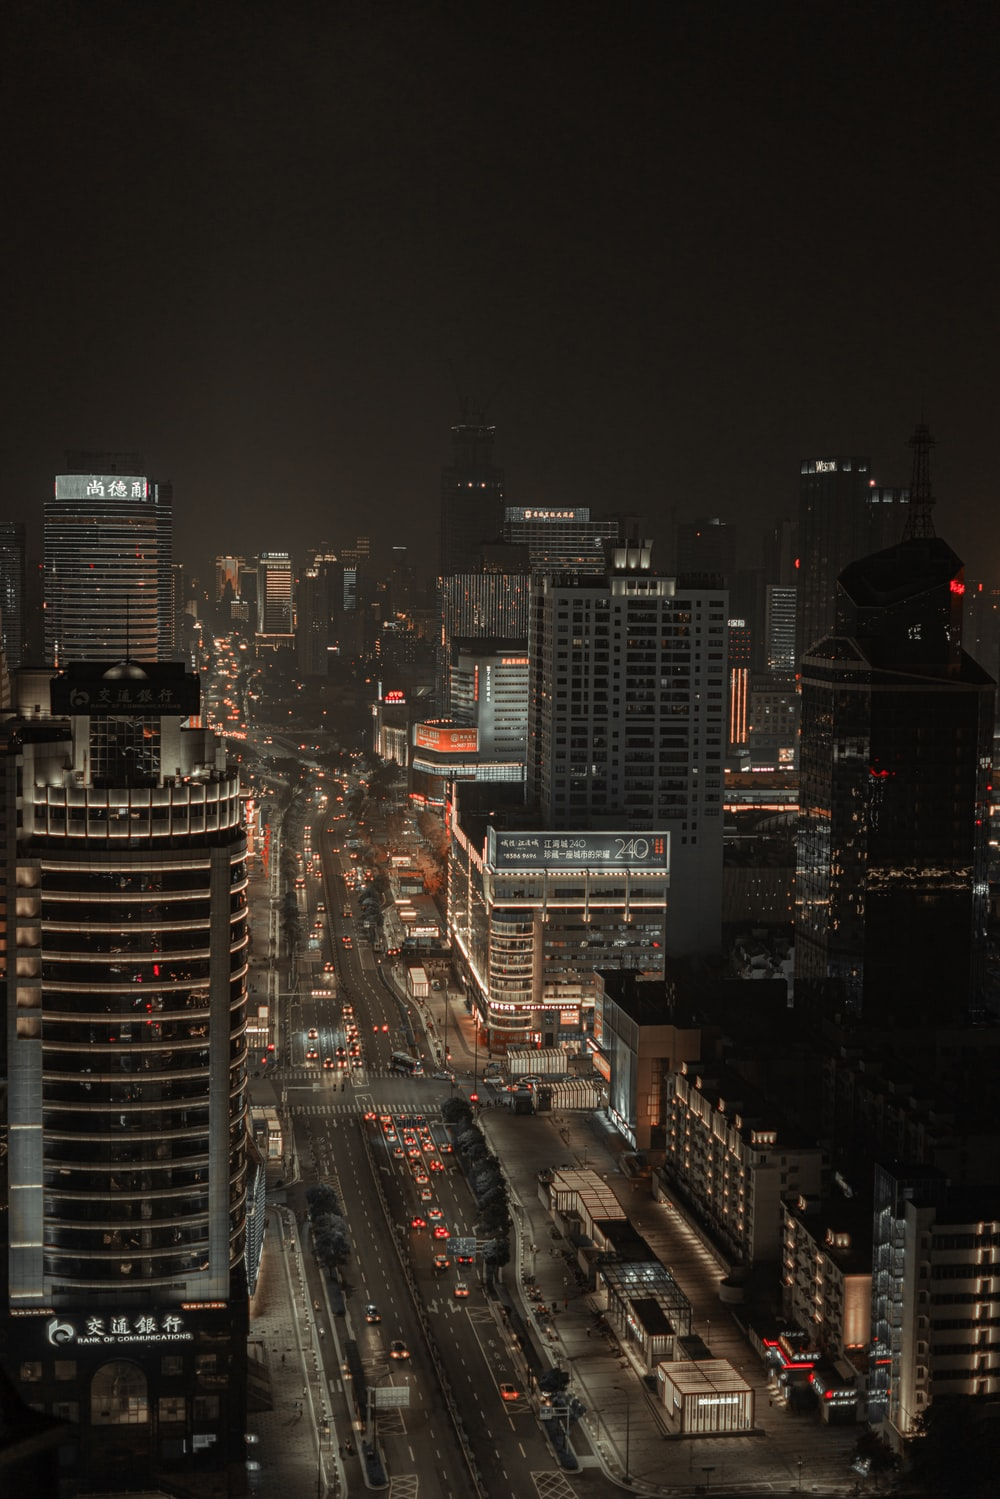 city buildings and traffic lights during nighttime